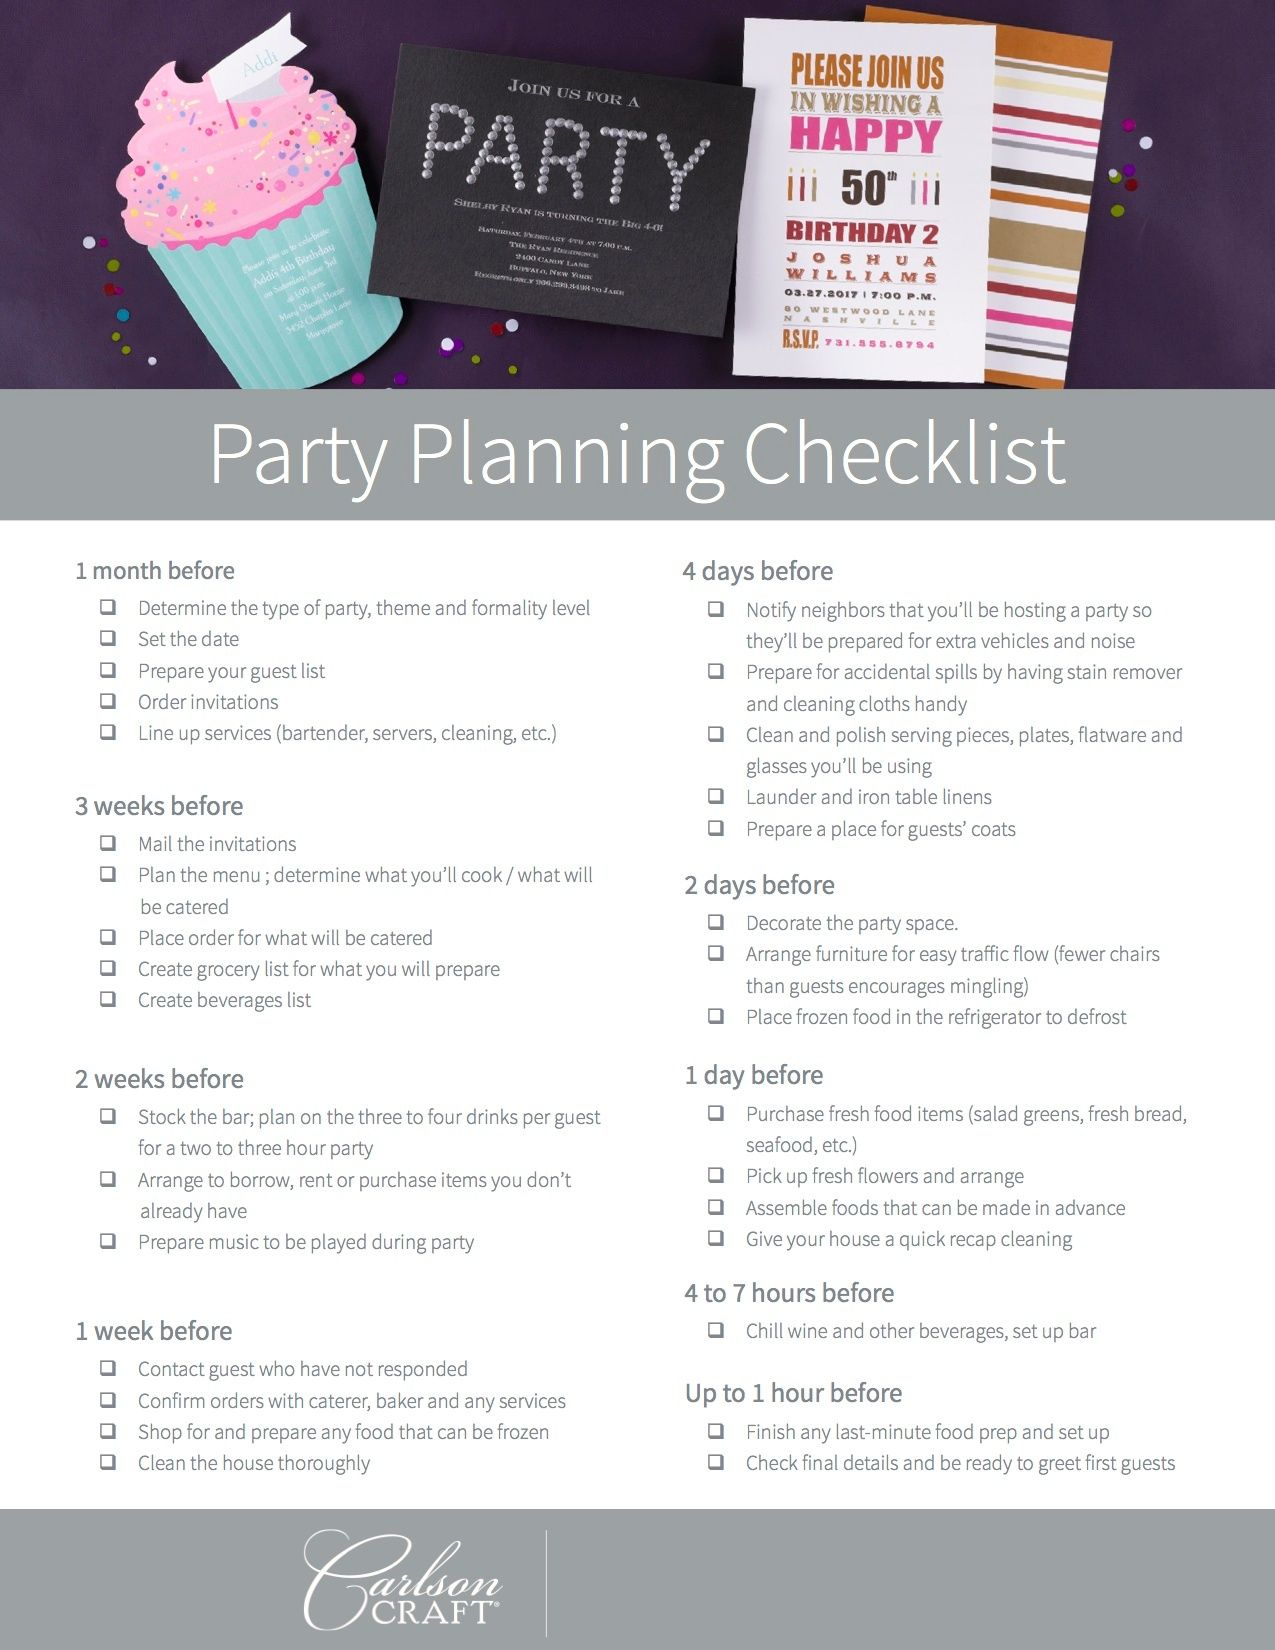 Party Planning Checklists and more! Party planning